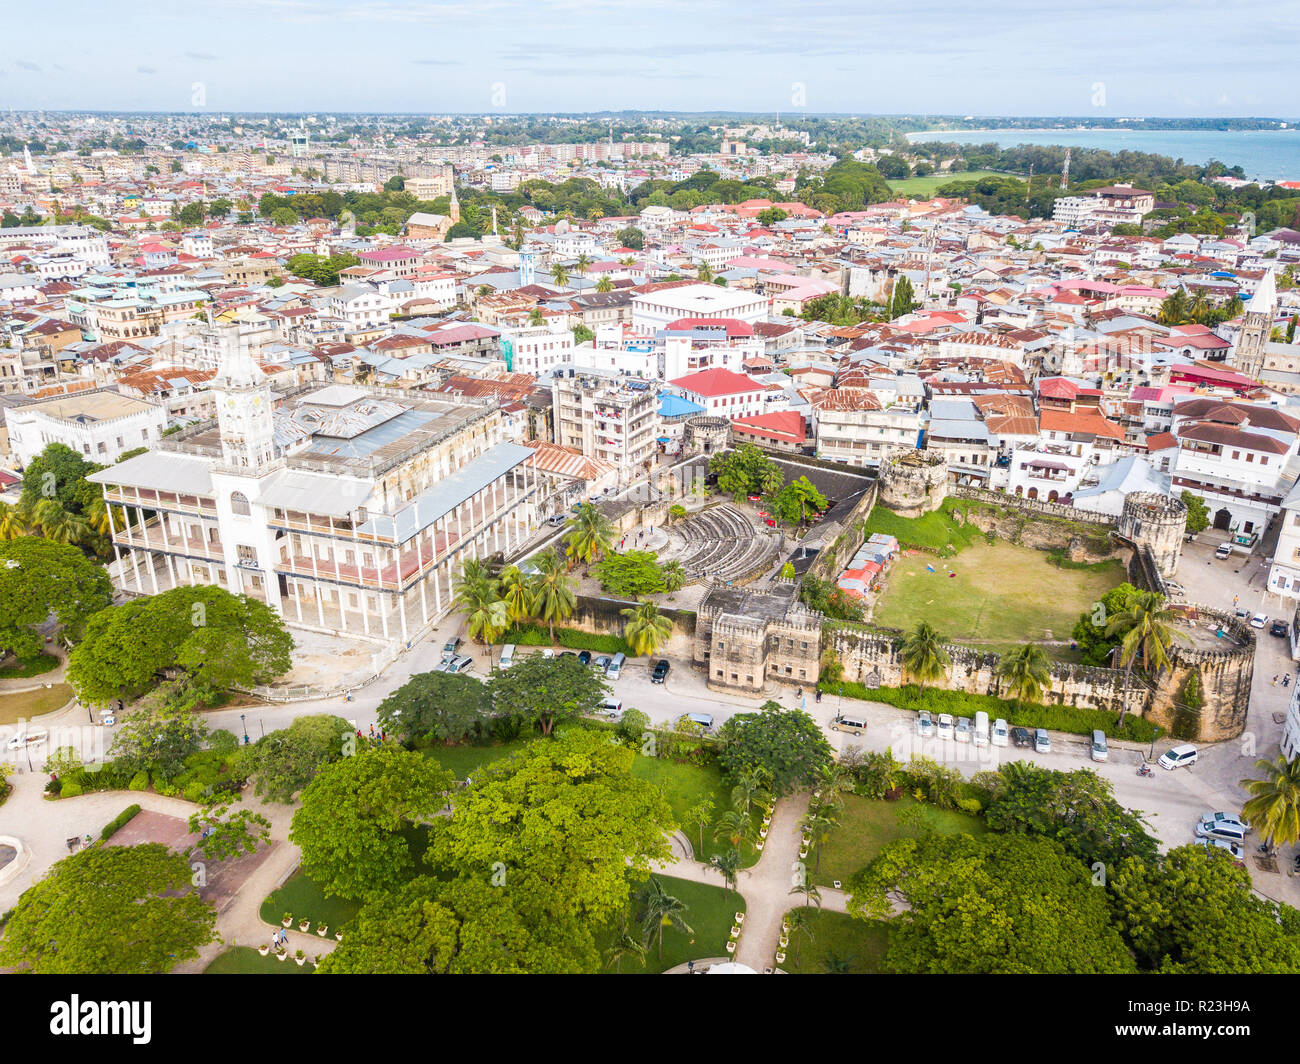 House of Wonders. Old Fort (Arab Fort built by Sultan of Oman). Stone Town, old colonial center of Zanzibar City, Unguja island, Tanzania. Aerial view - Stock Image